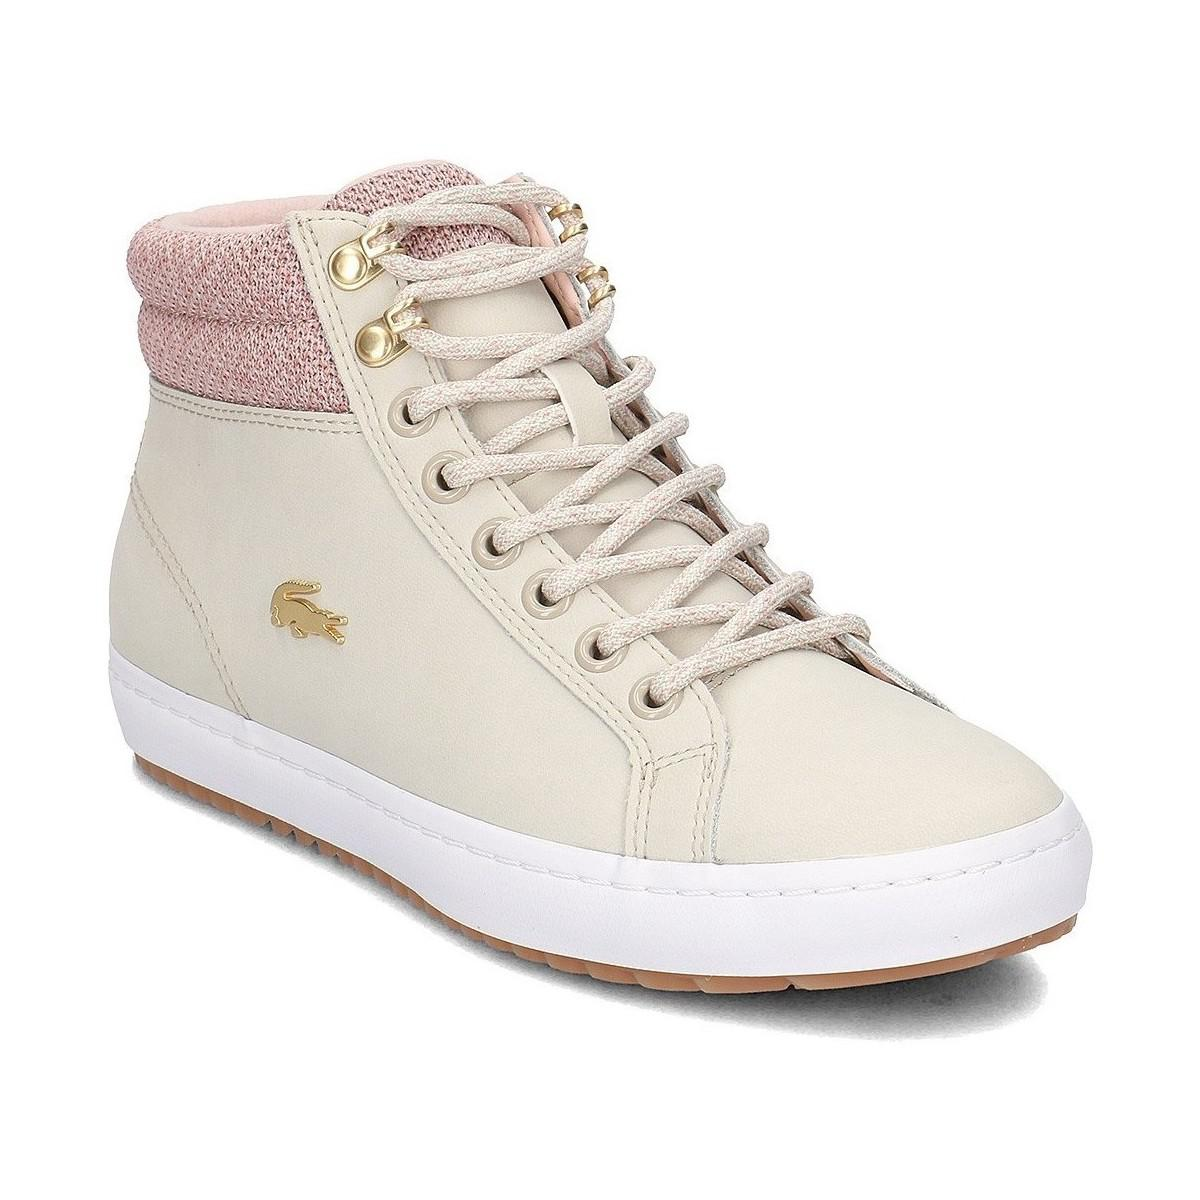 798dfc9fb575 Lacoste 736caw00457f8 Women s Shoes (high-top Trainers) In ...